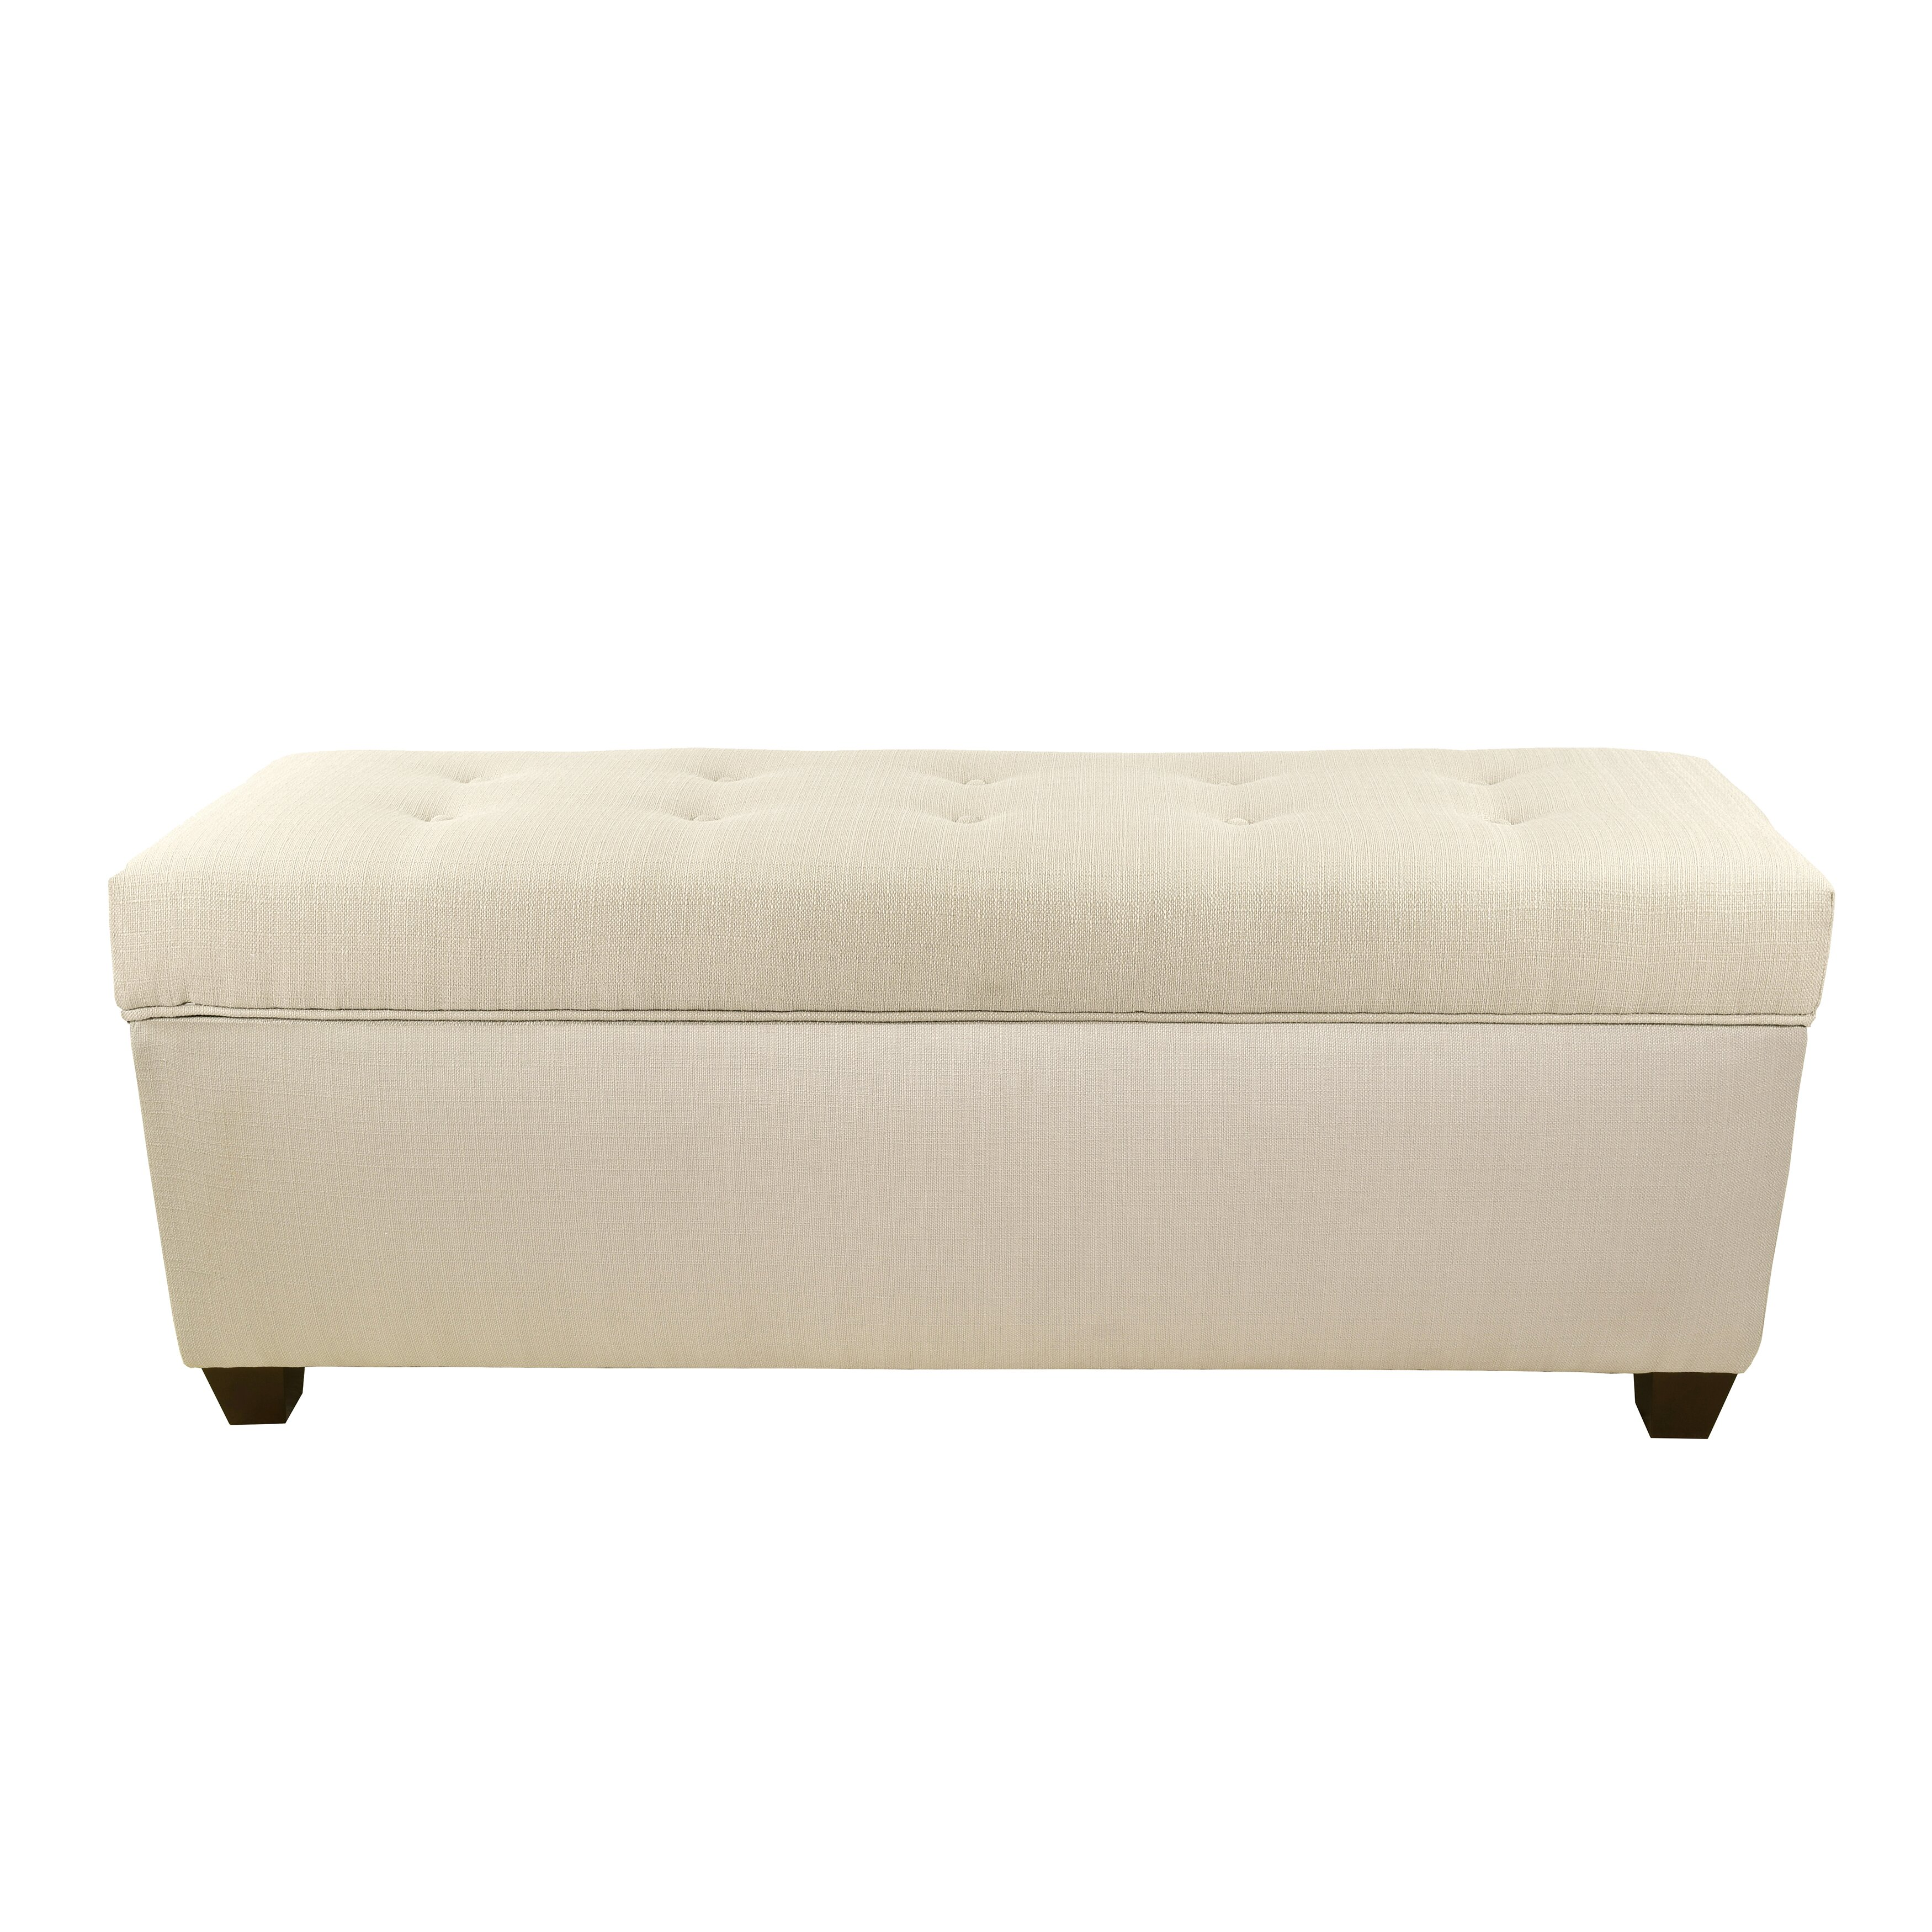 The Sole Secret Sole Secret Upholstered Storage Bench Reviews Wayfair